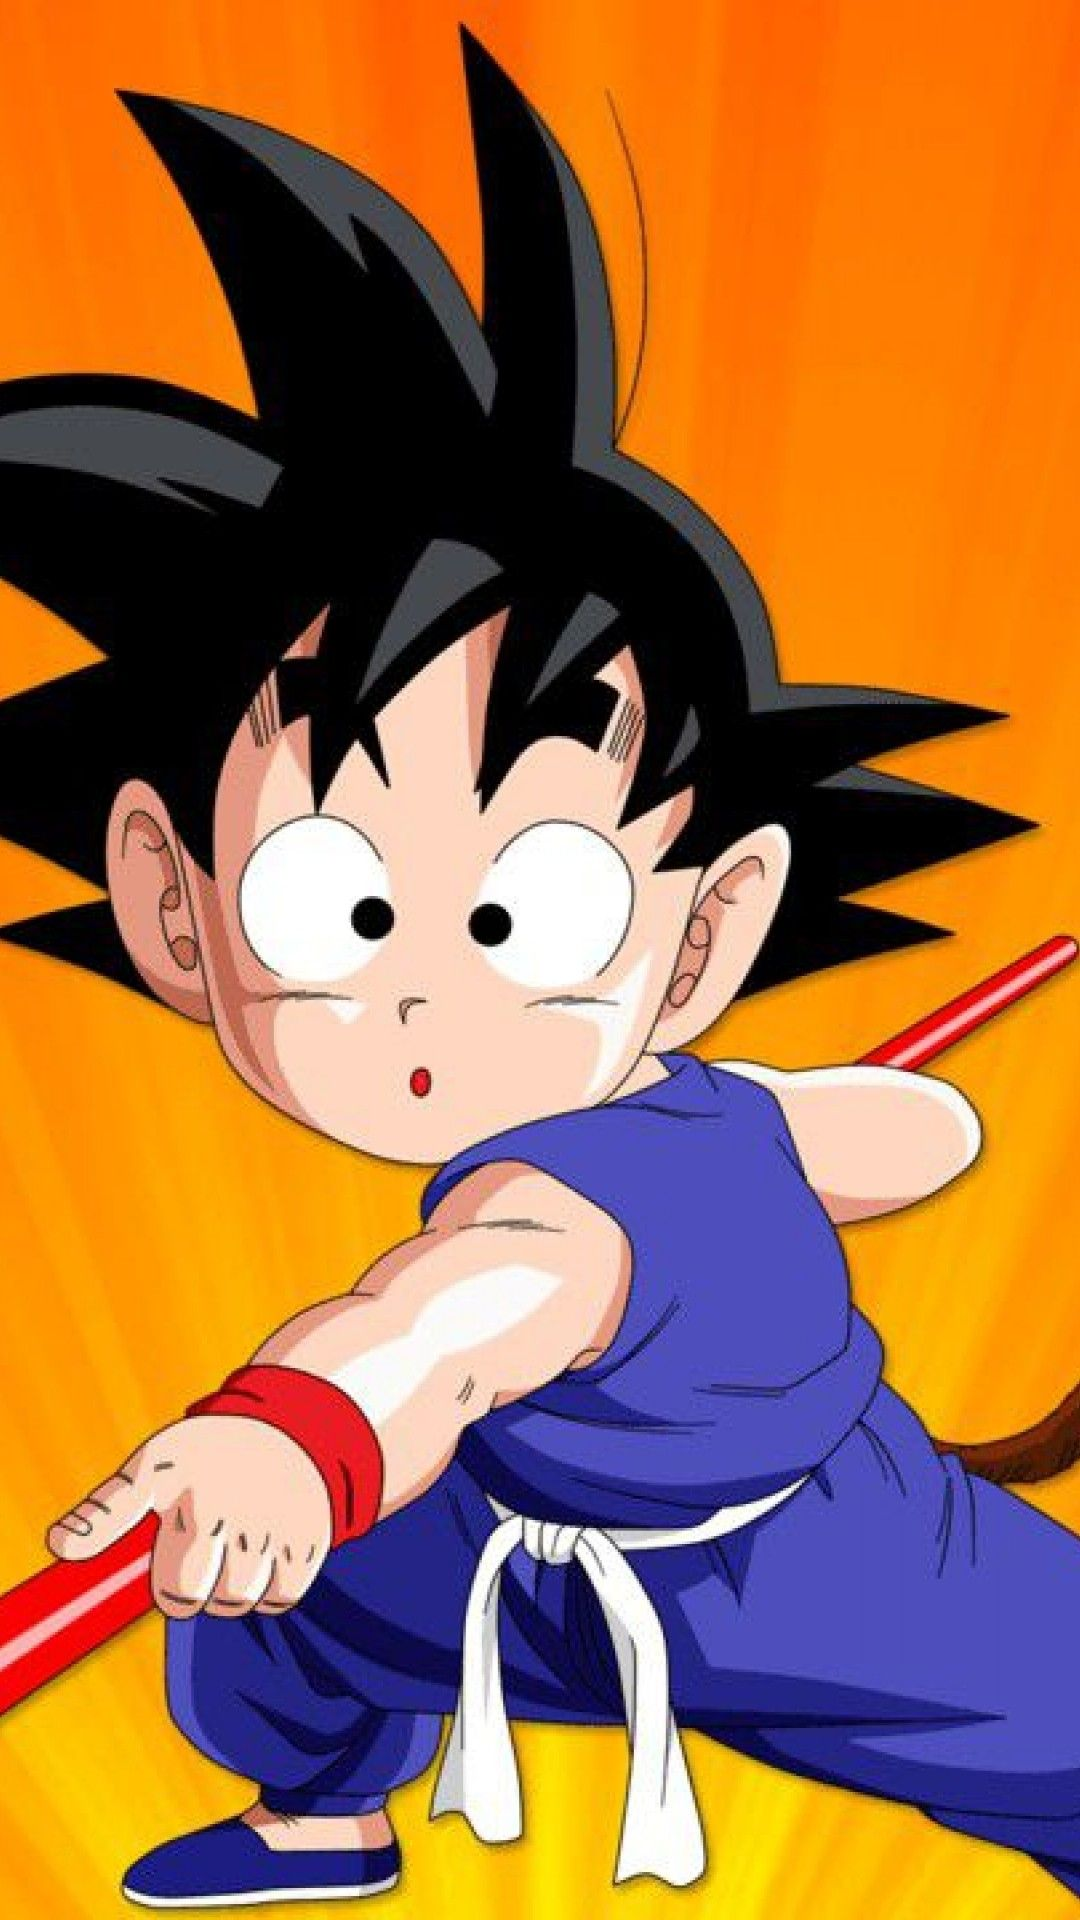 Young Goku Wallpapers Top Free Young Goku Backgrounds